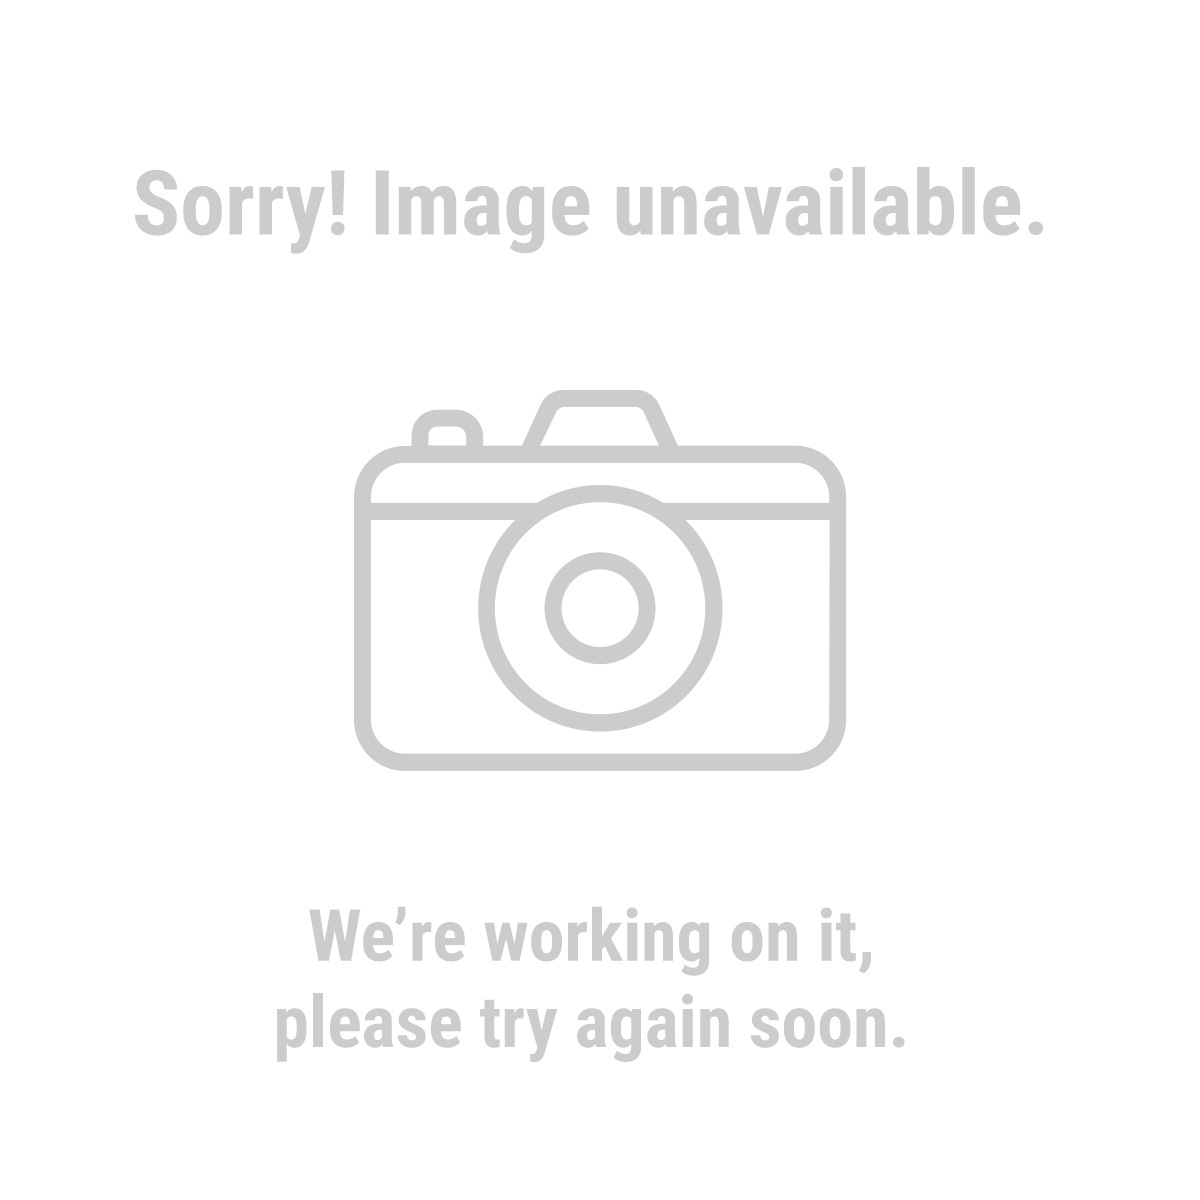 Chicago Electric Power Tools 45284 50 Ft. 14 Gauge Outdoor Extension Cord